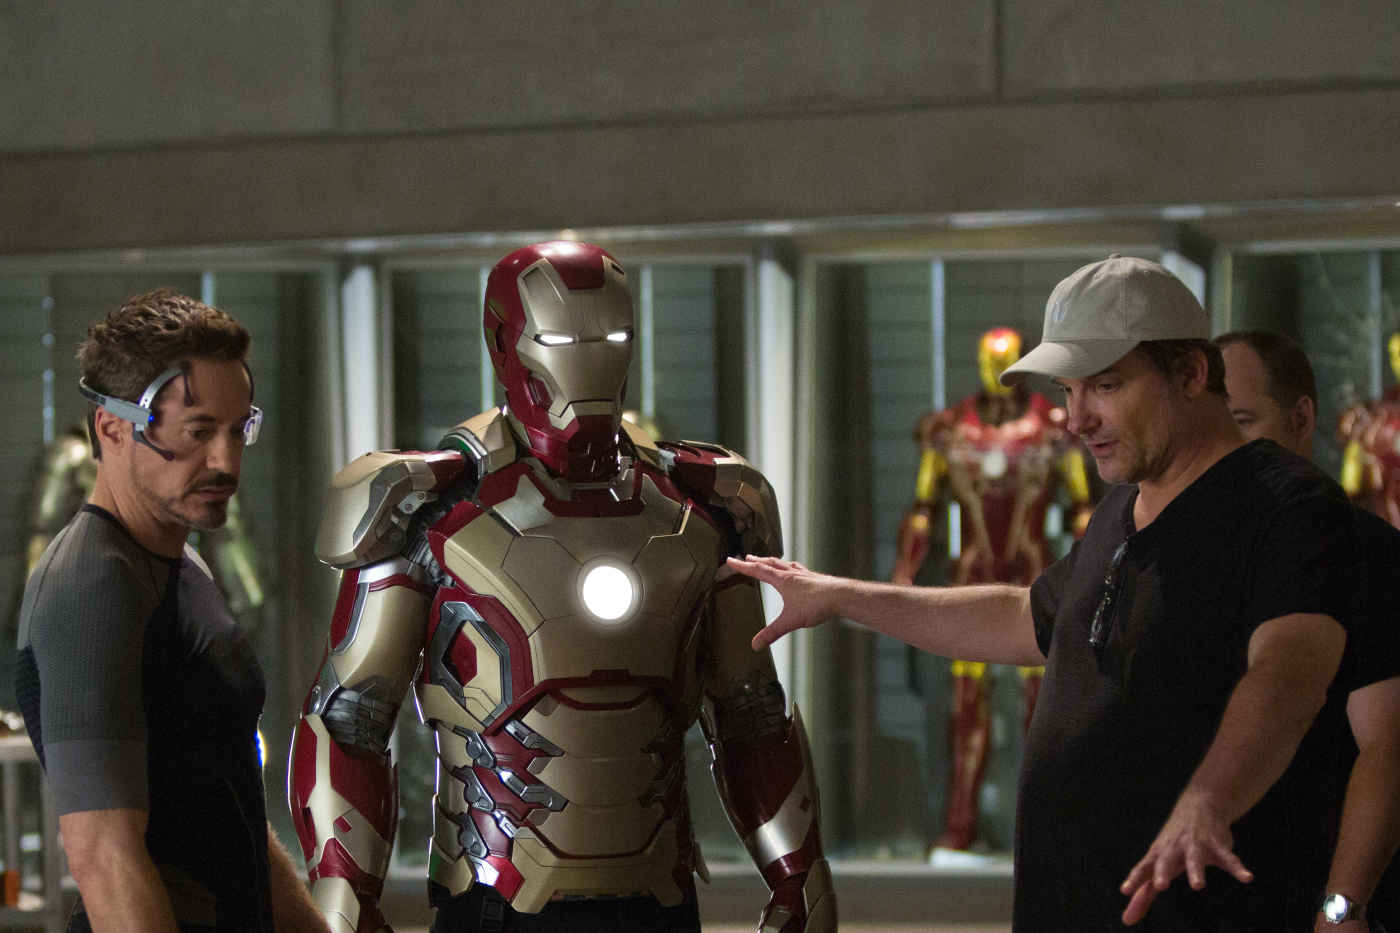 Shane Black dirige Robert Downey Jr. em set de filmagem (photo by www.outnow.ch)